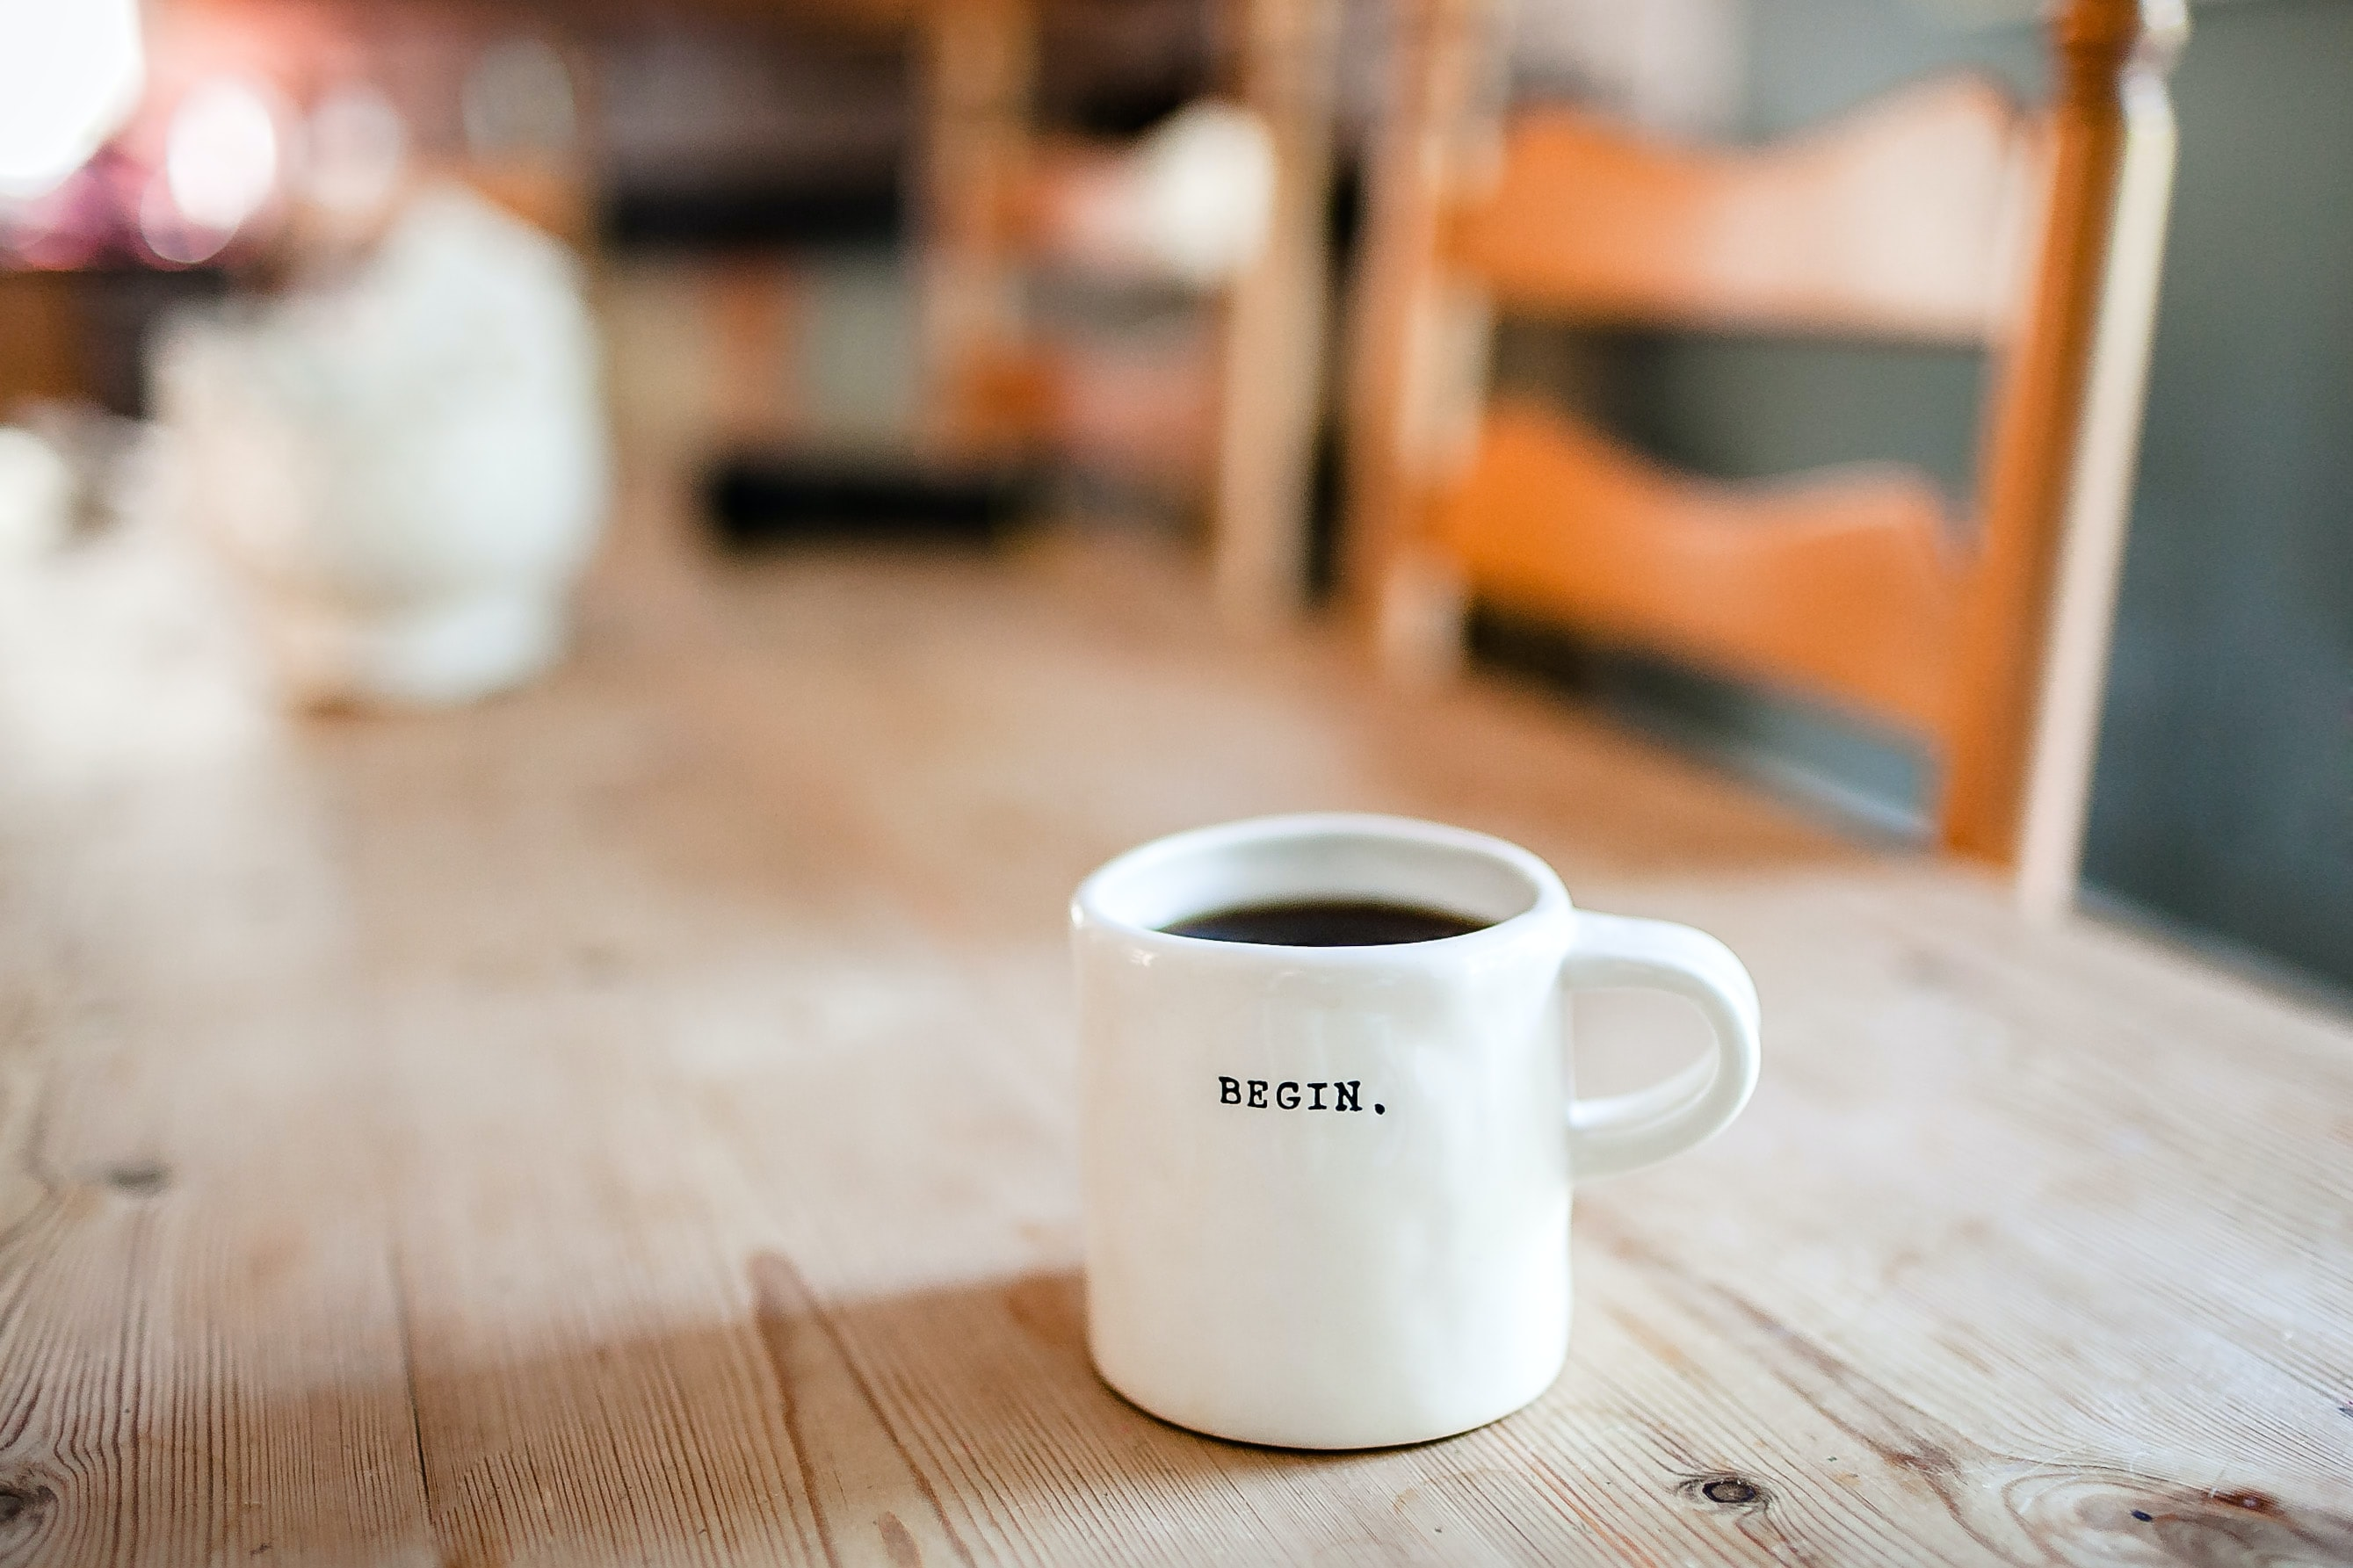 Fully coffee mug with BEGIN. inscribed. Because, like coffee, Life Planning is how we begin every financial planning engagement.